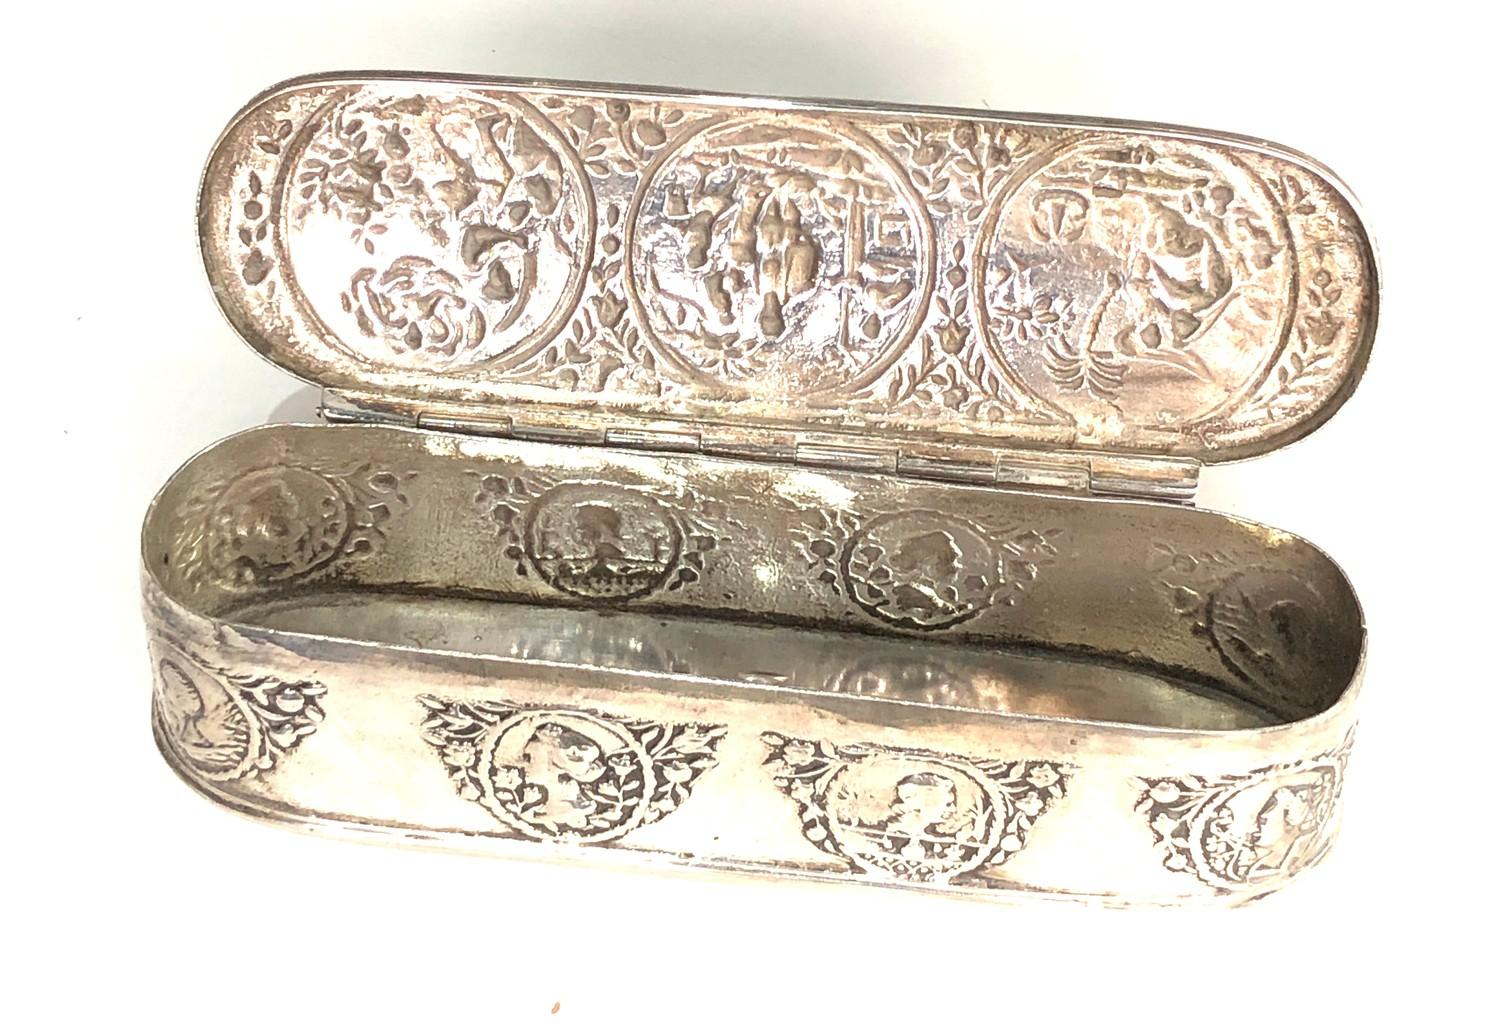 Antique Dutch silver tobacco box the hinged cover chased with scenes measures approx 16cm by 5cm 3. - Image 11 of 14